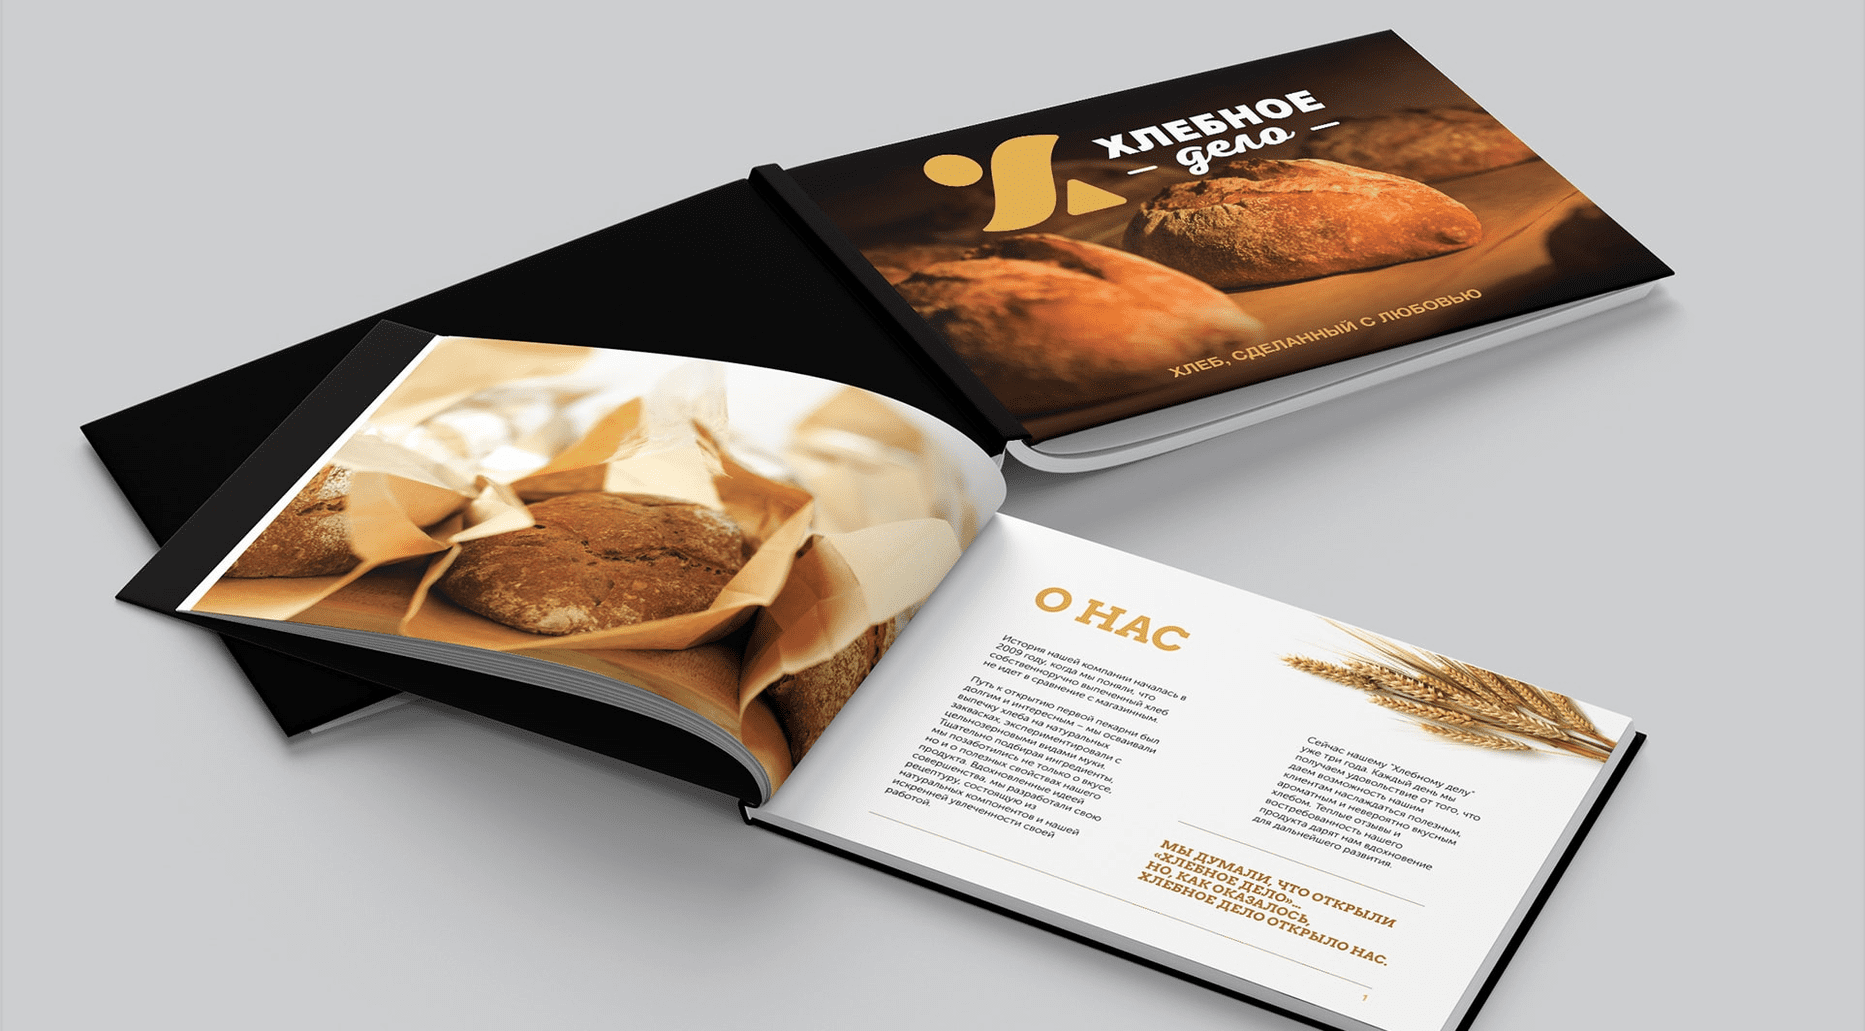 Case: logo design, branding and marketing kit for the bread business — Rubarb - Image - 13